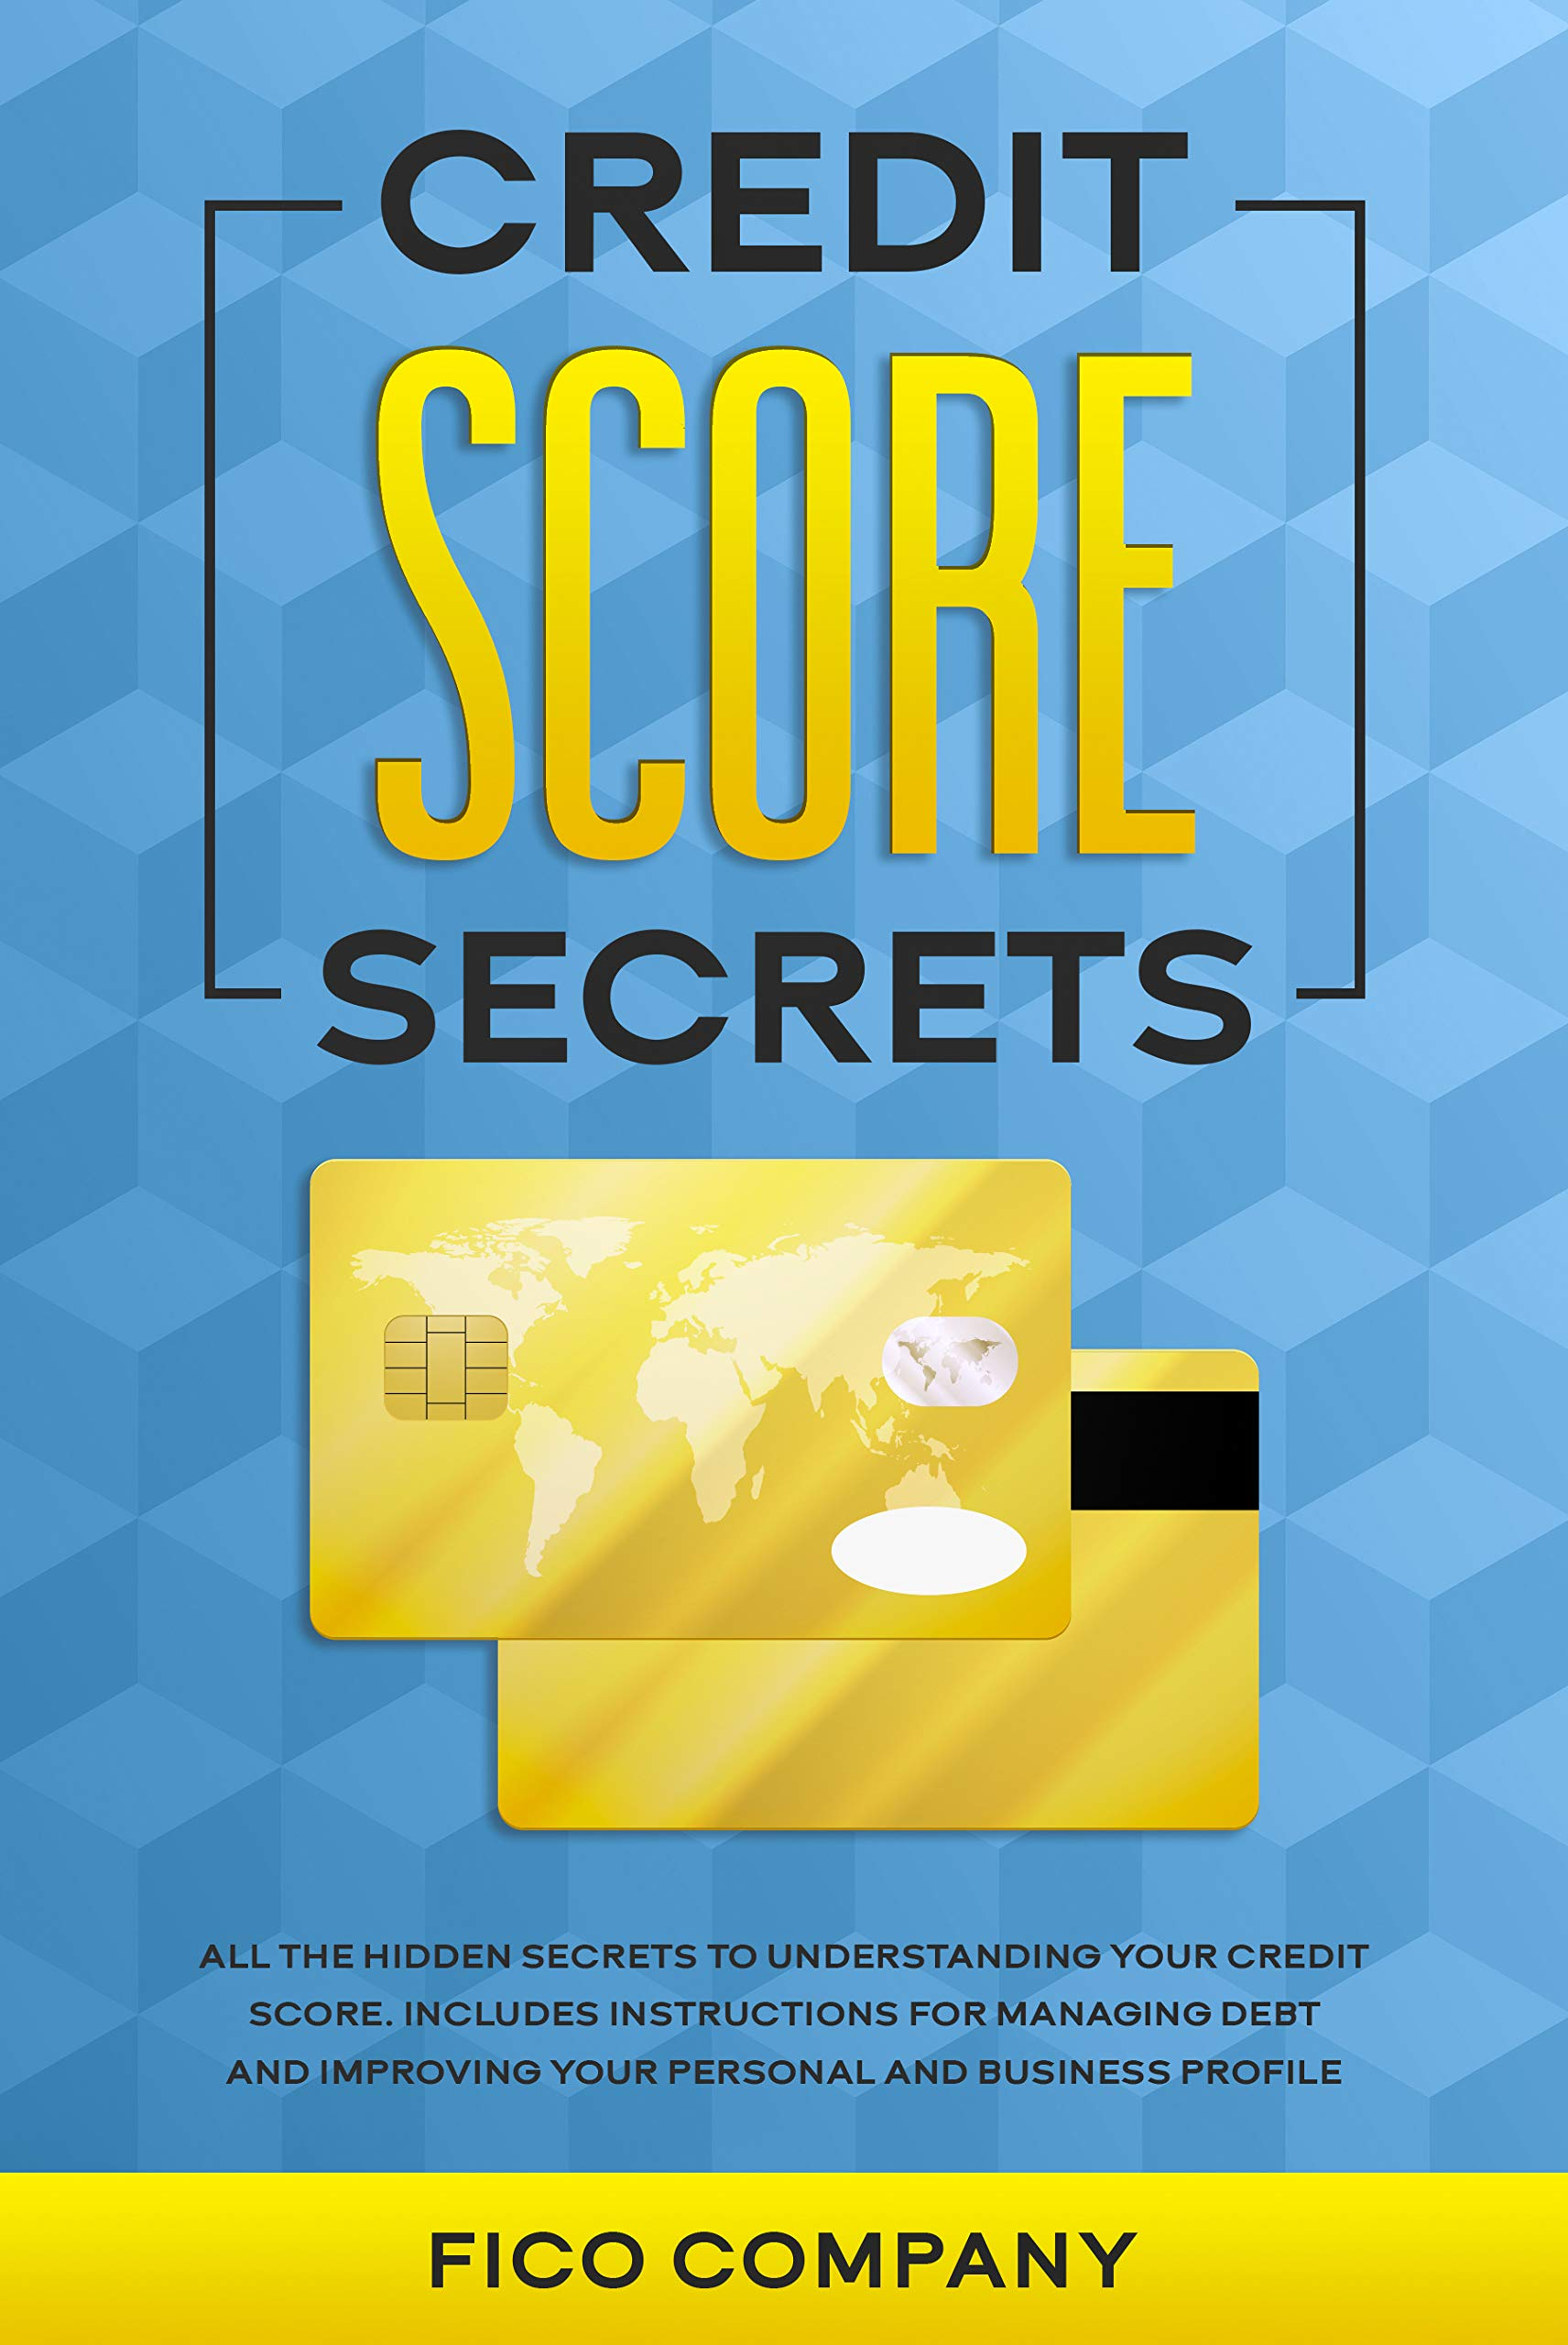 CREDIT SCORE SECRETS: All the Hidden Secrets to Understanding Your Credit Score. Includes Instructions for Managing Debt and Improving Your Personal and Business Profile.